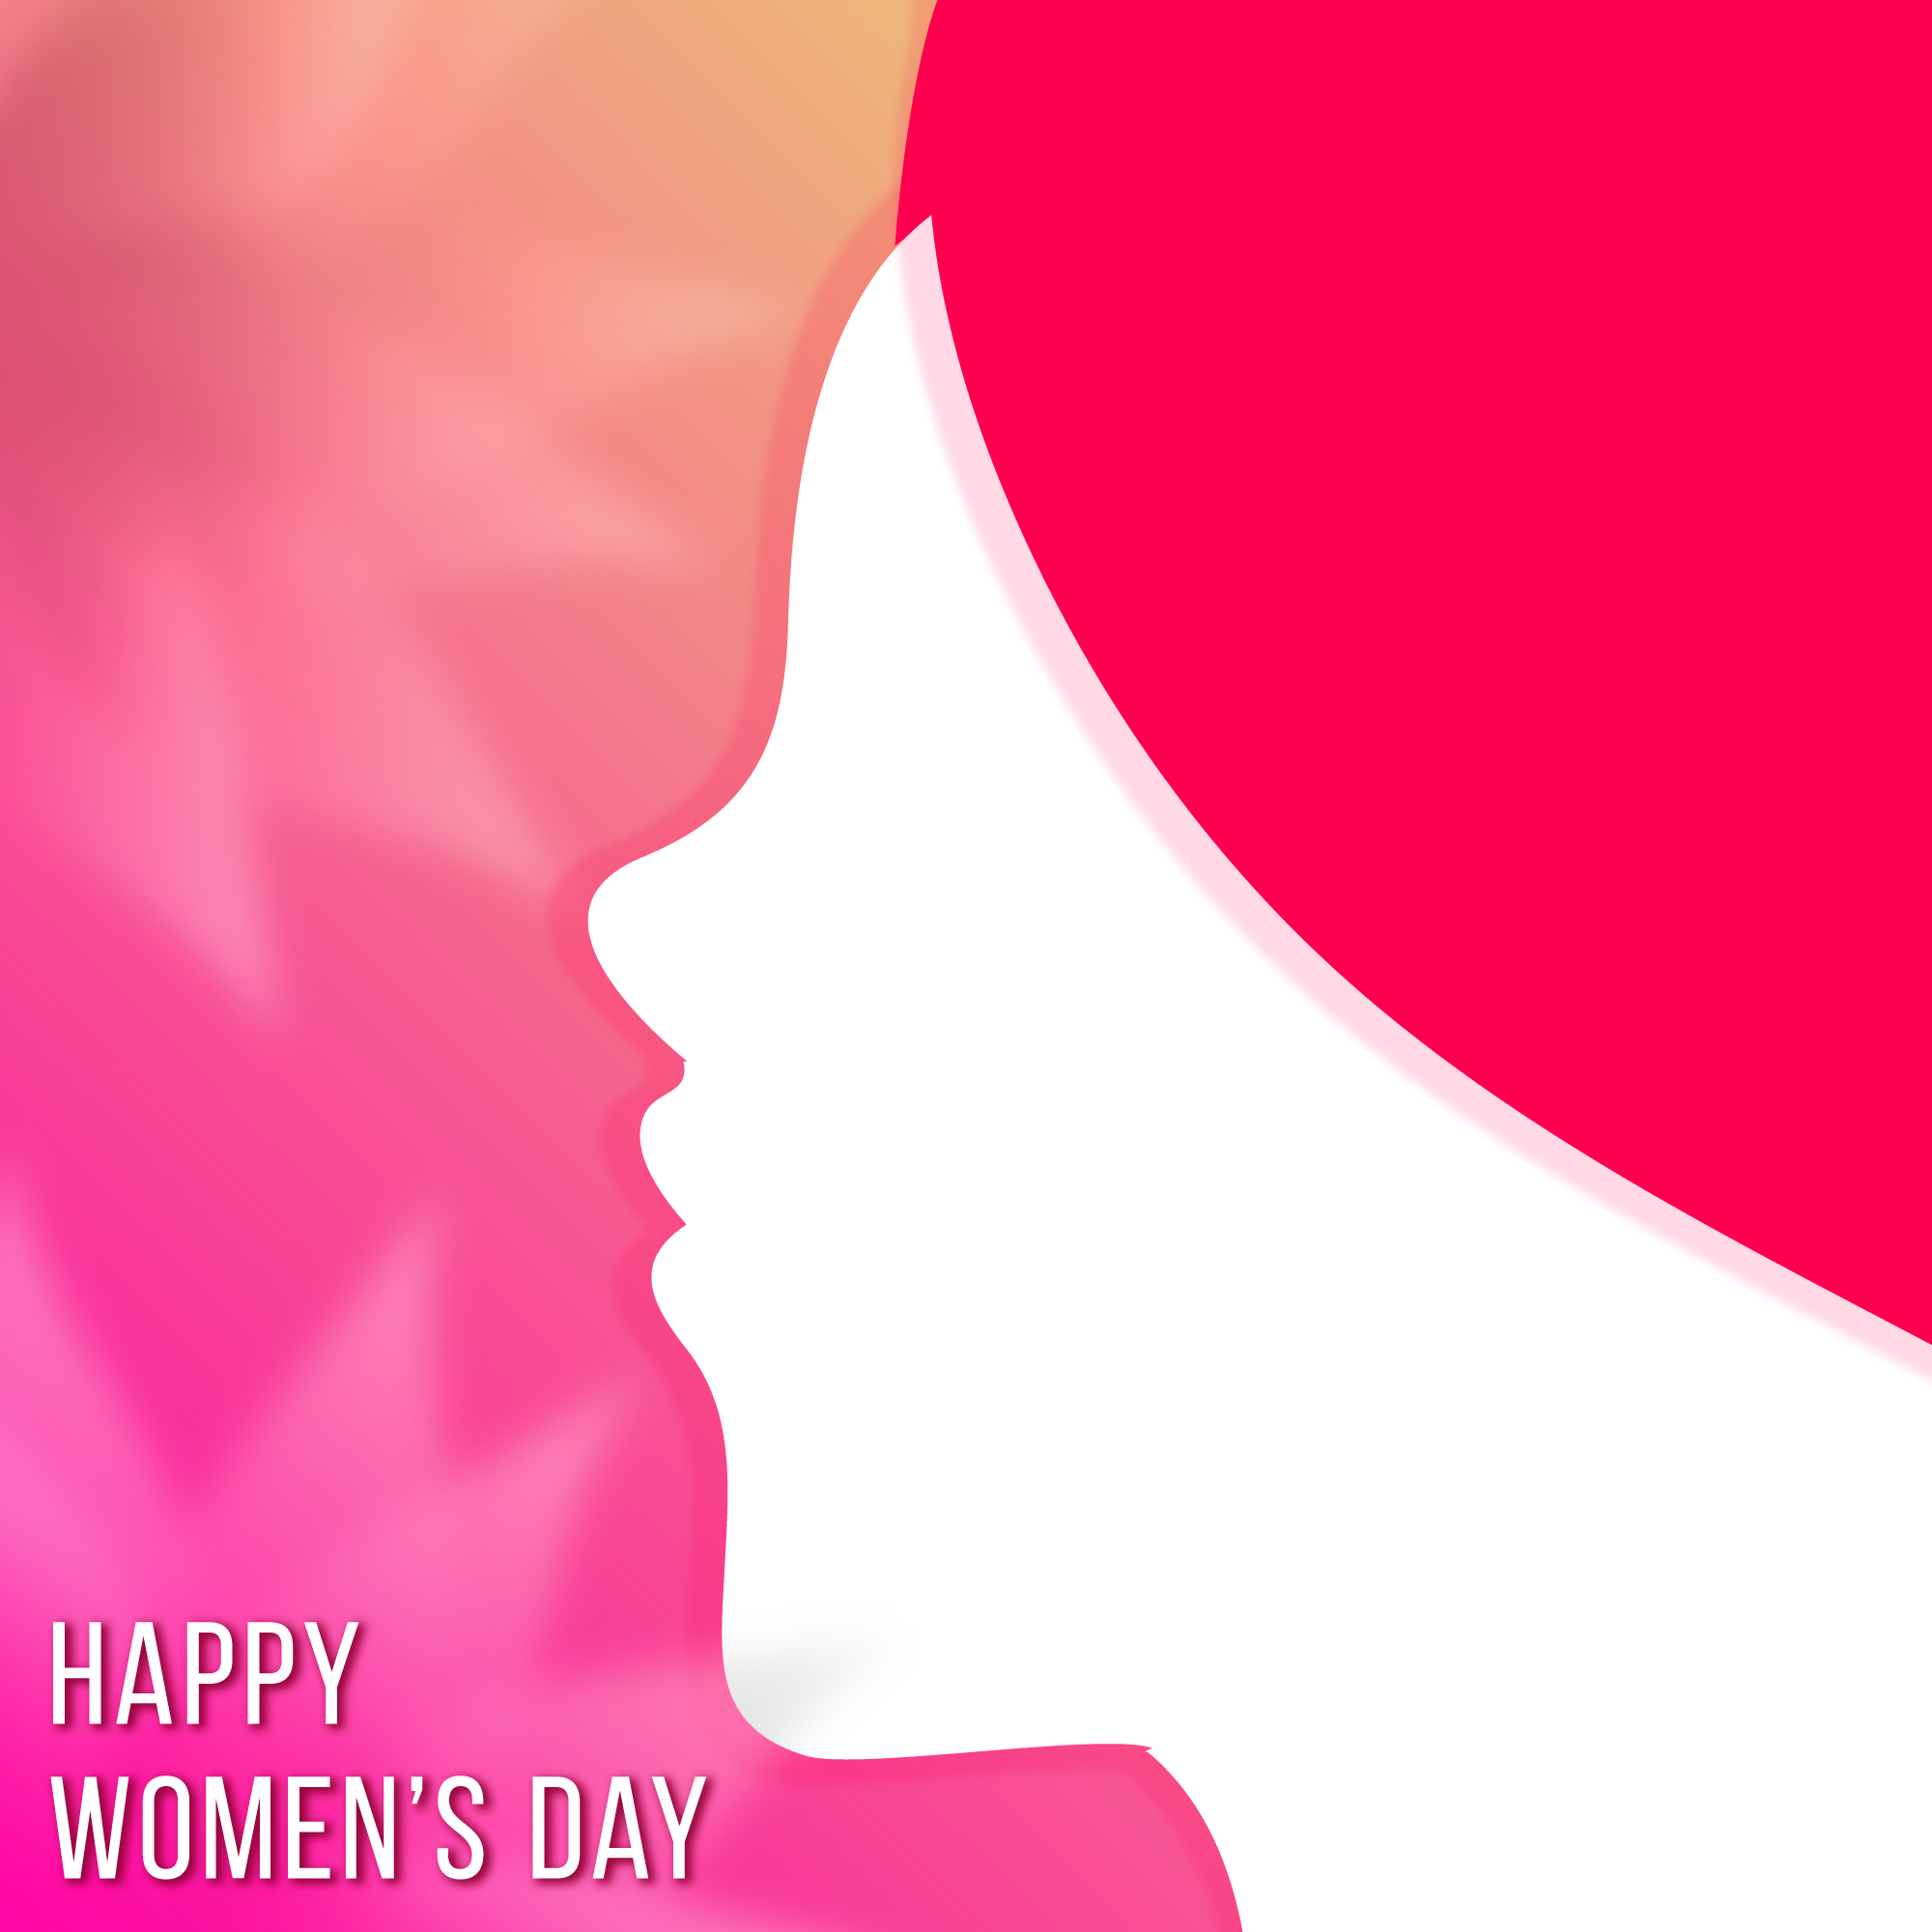 Pink background with a white silhouette for woman's day